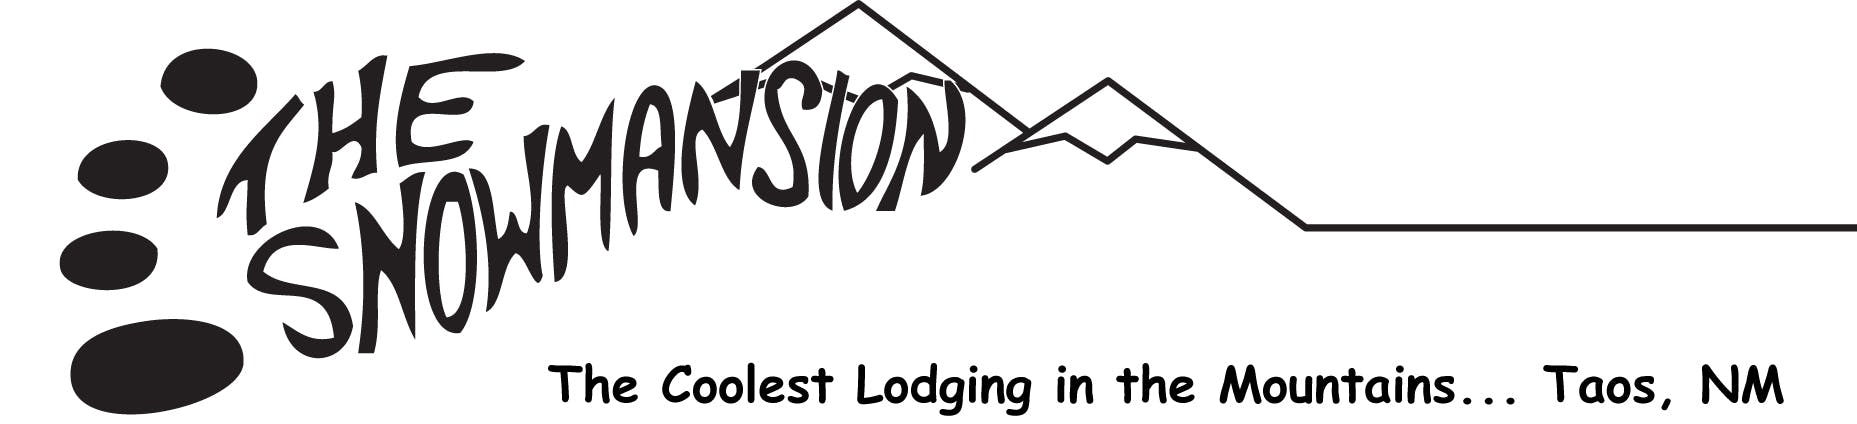 SnowMansion Eco Adventure Lodge & Hostel